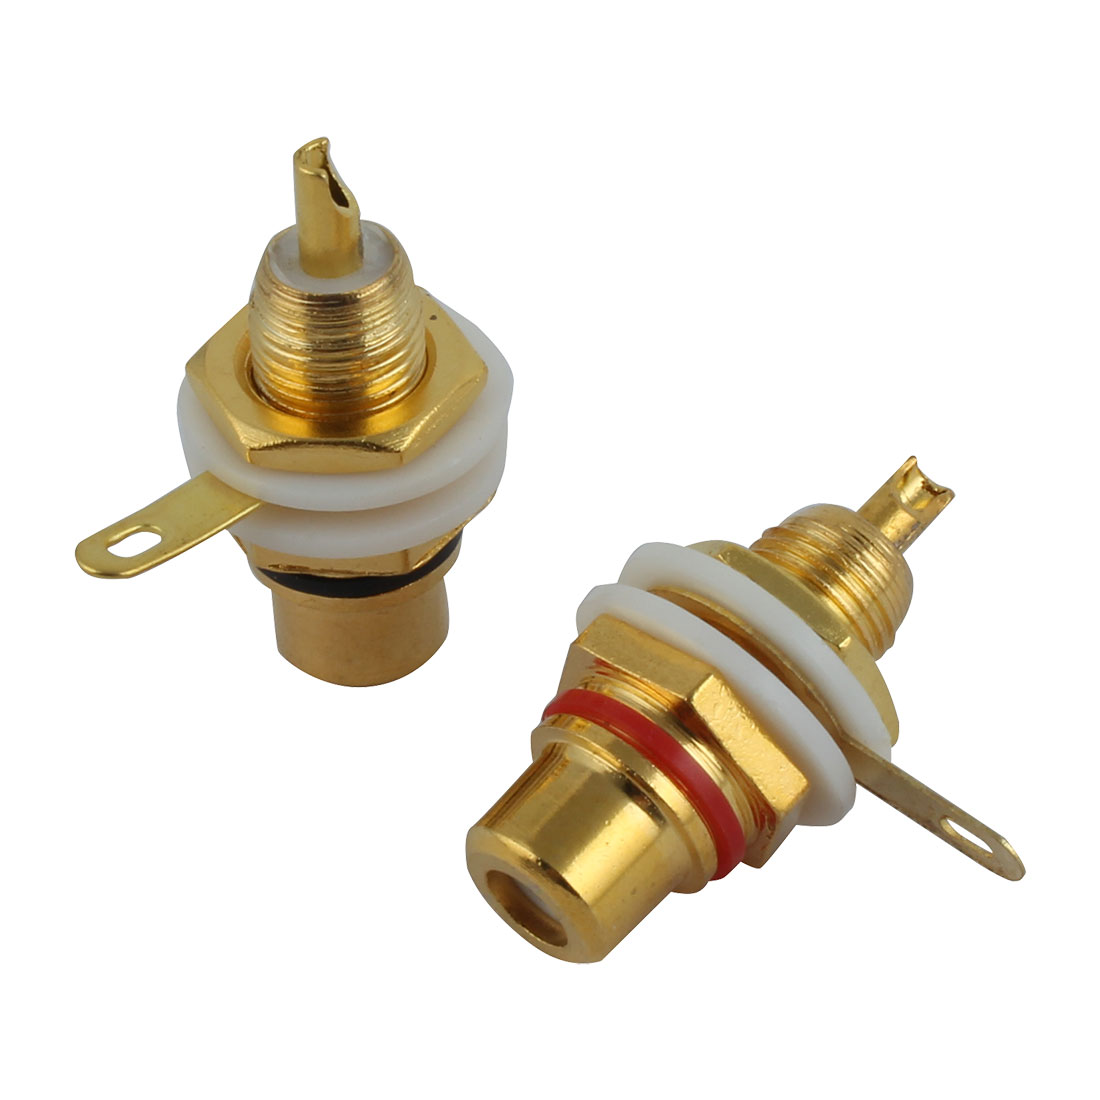 2 Pcs RCA Female Terminal Plug Speaker Cable Connector Gold Tone